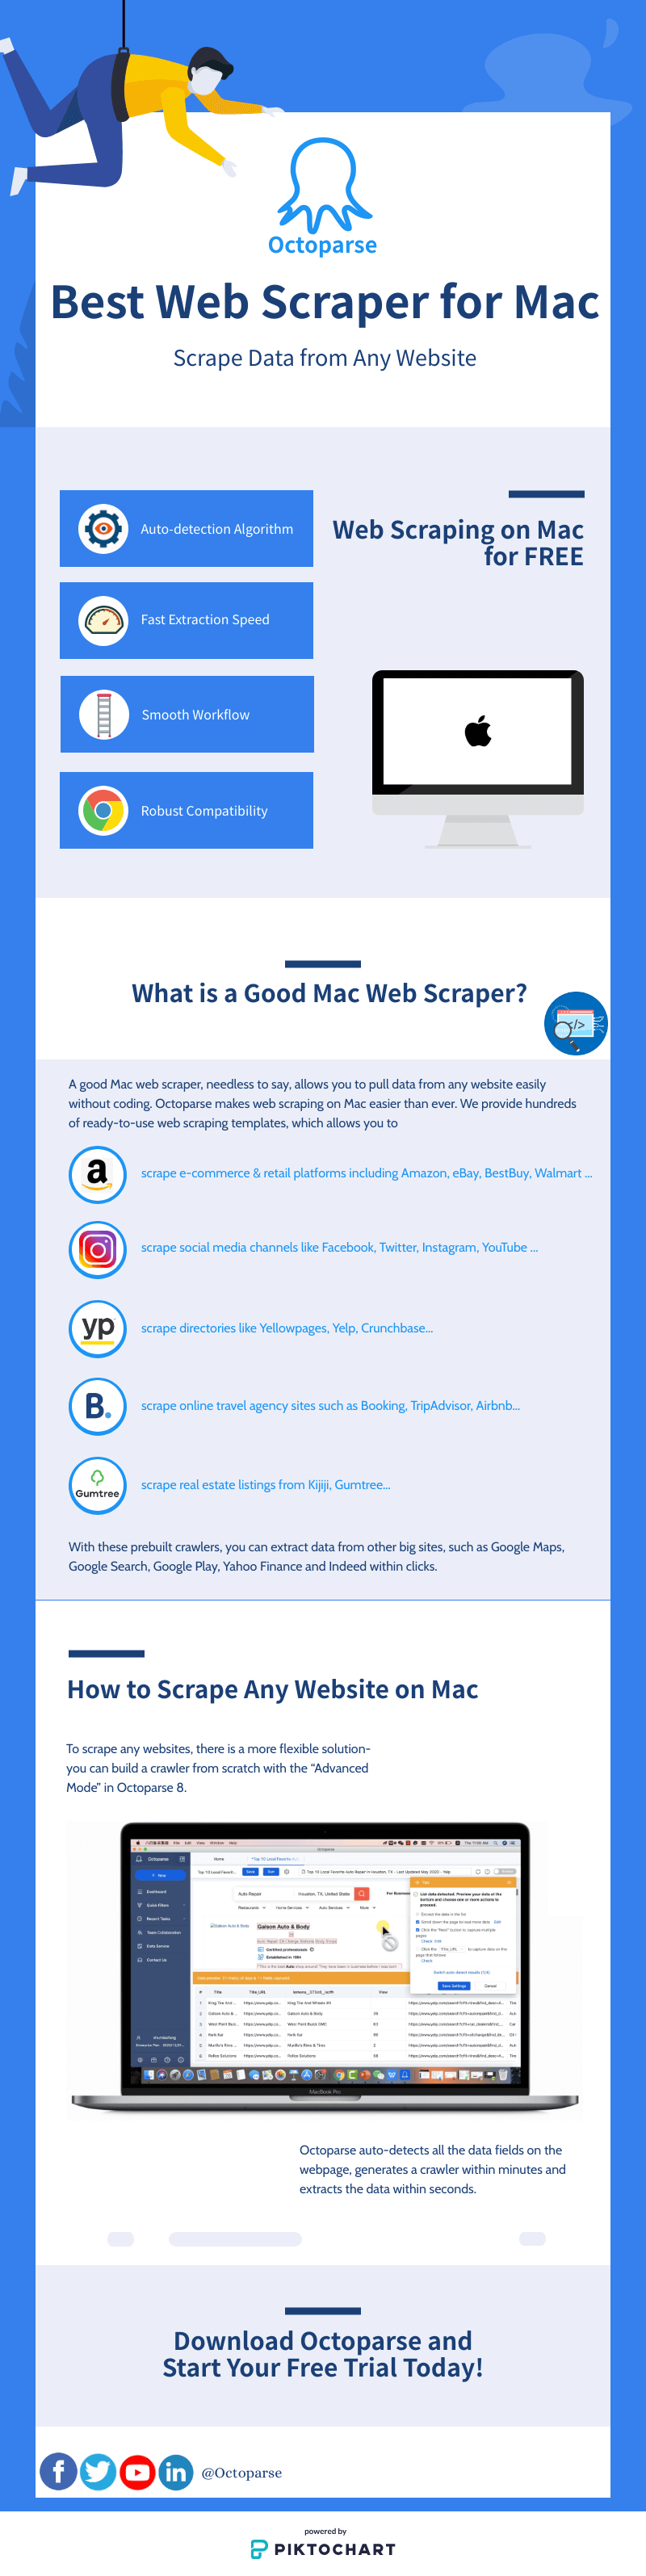 Octoparse best web scraper for mac infographics